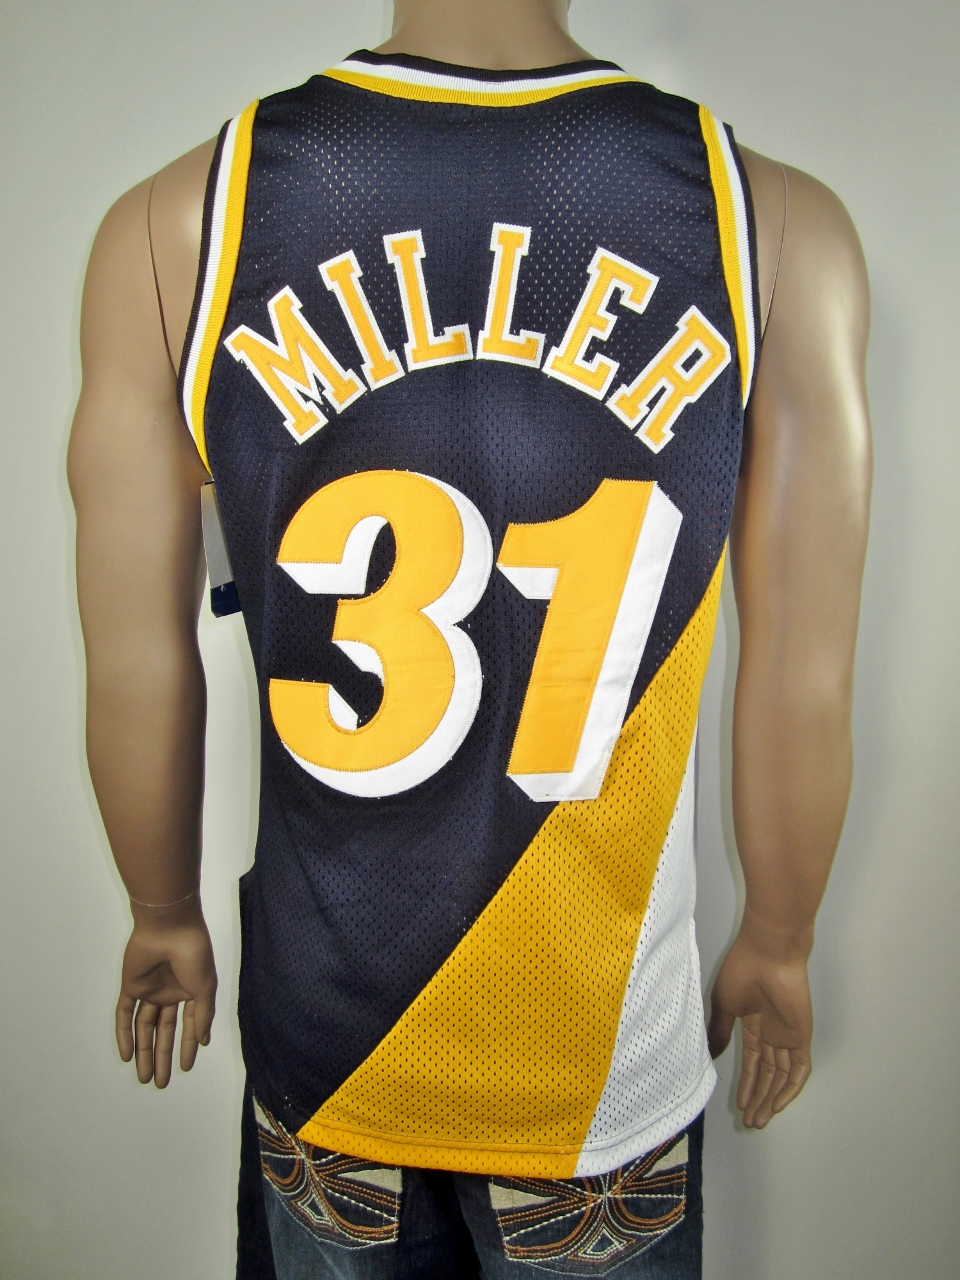 Reggie Miller Indiana Pacers Authentic Champion Jersey 40 NWT - Thumbnail 1  ... e06c39968